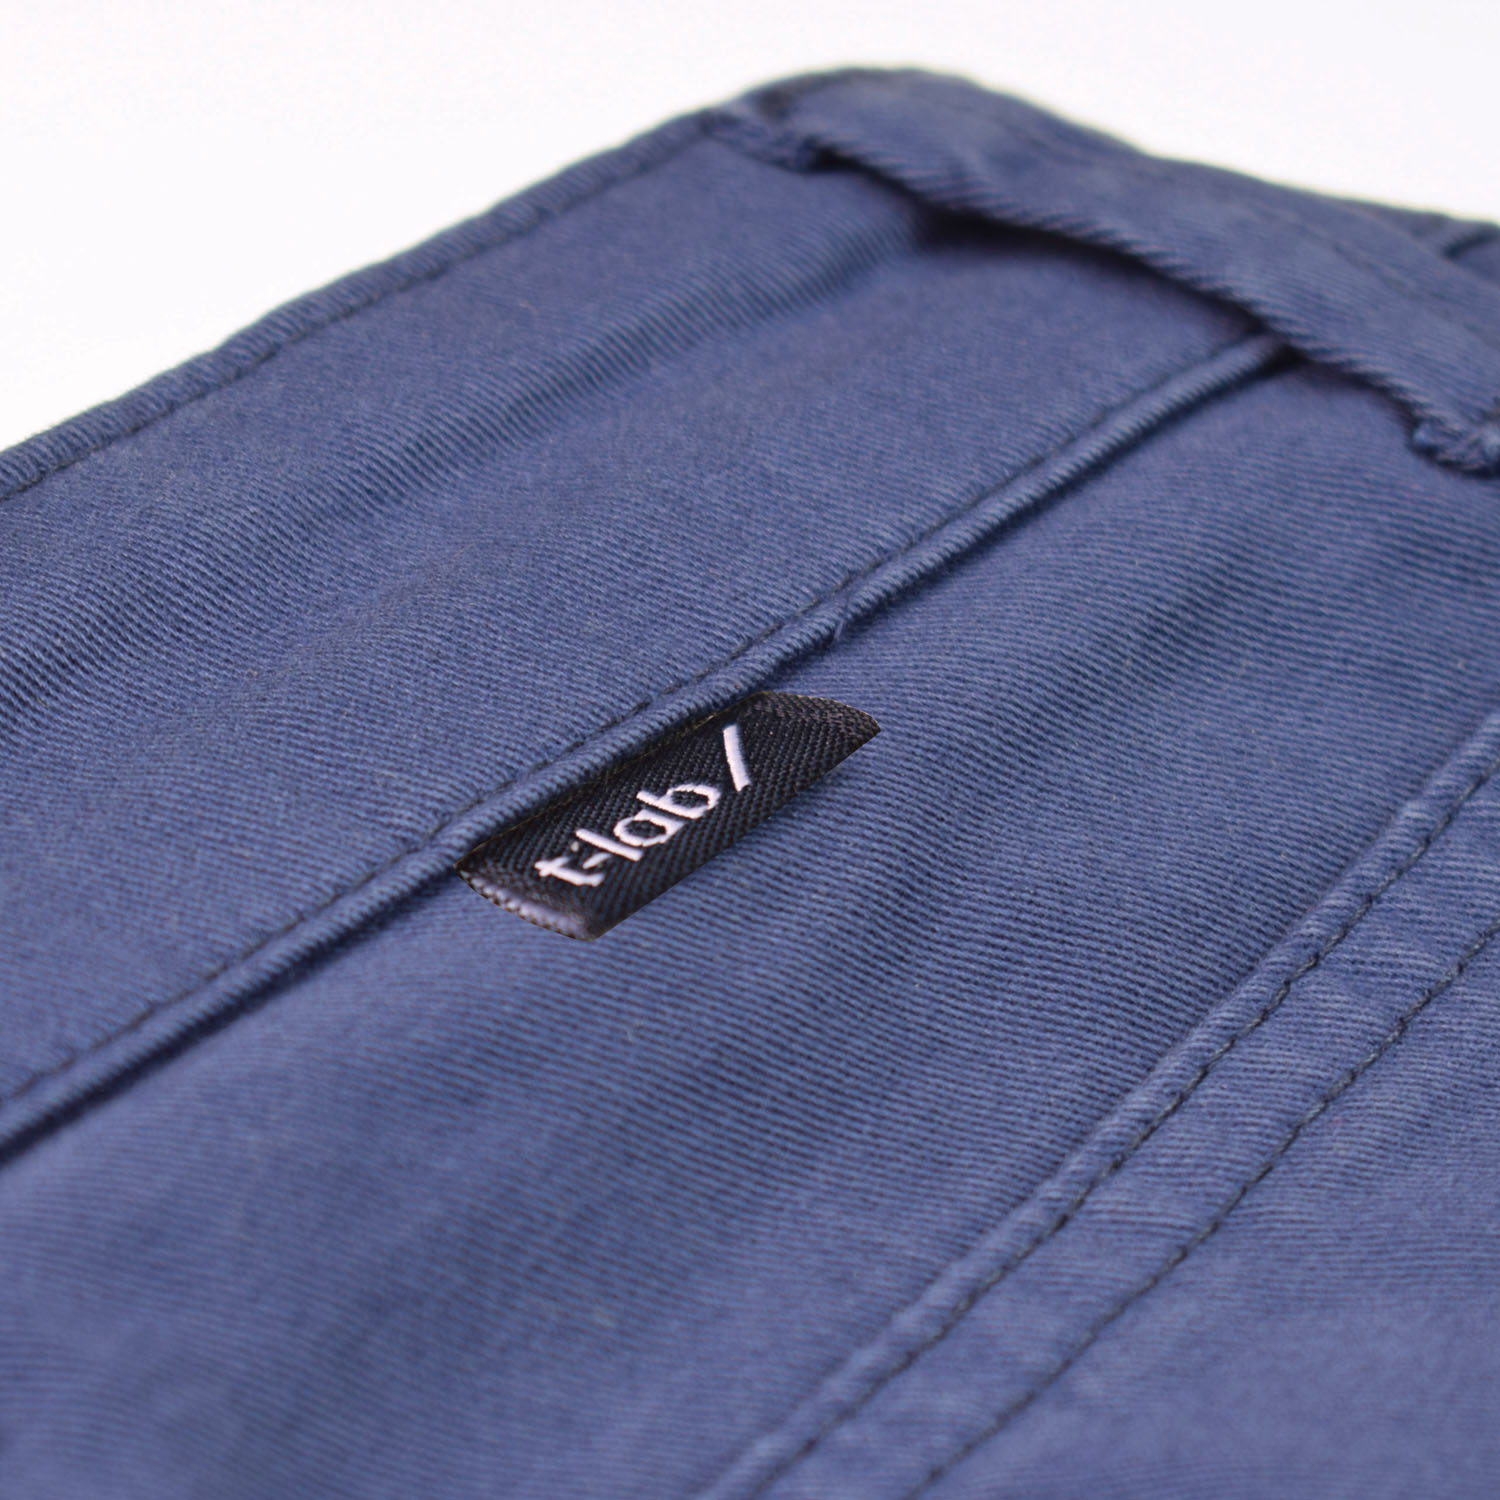 T-lab-Faro-mens-shorts-navy